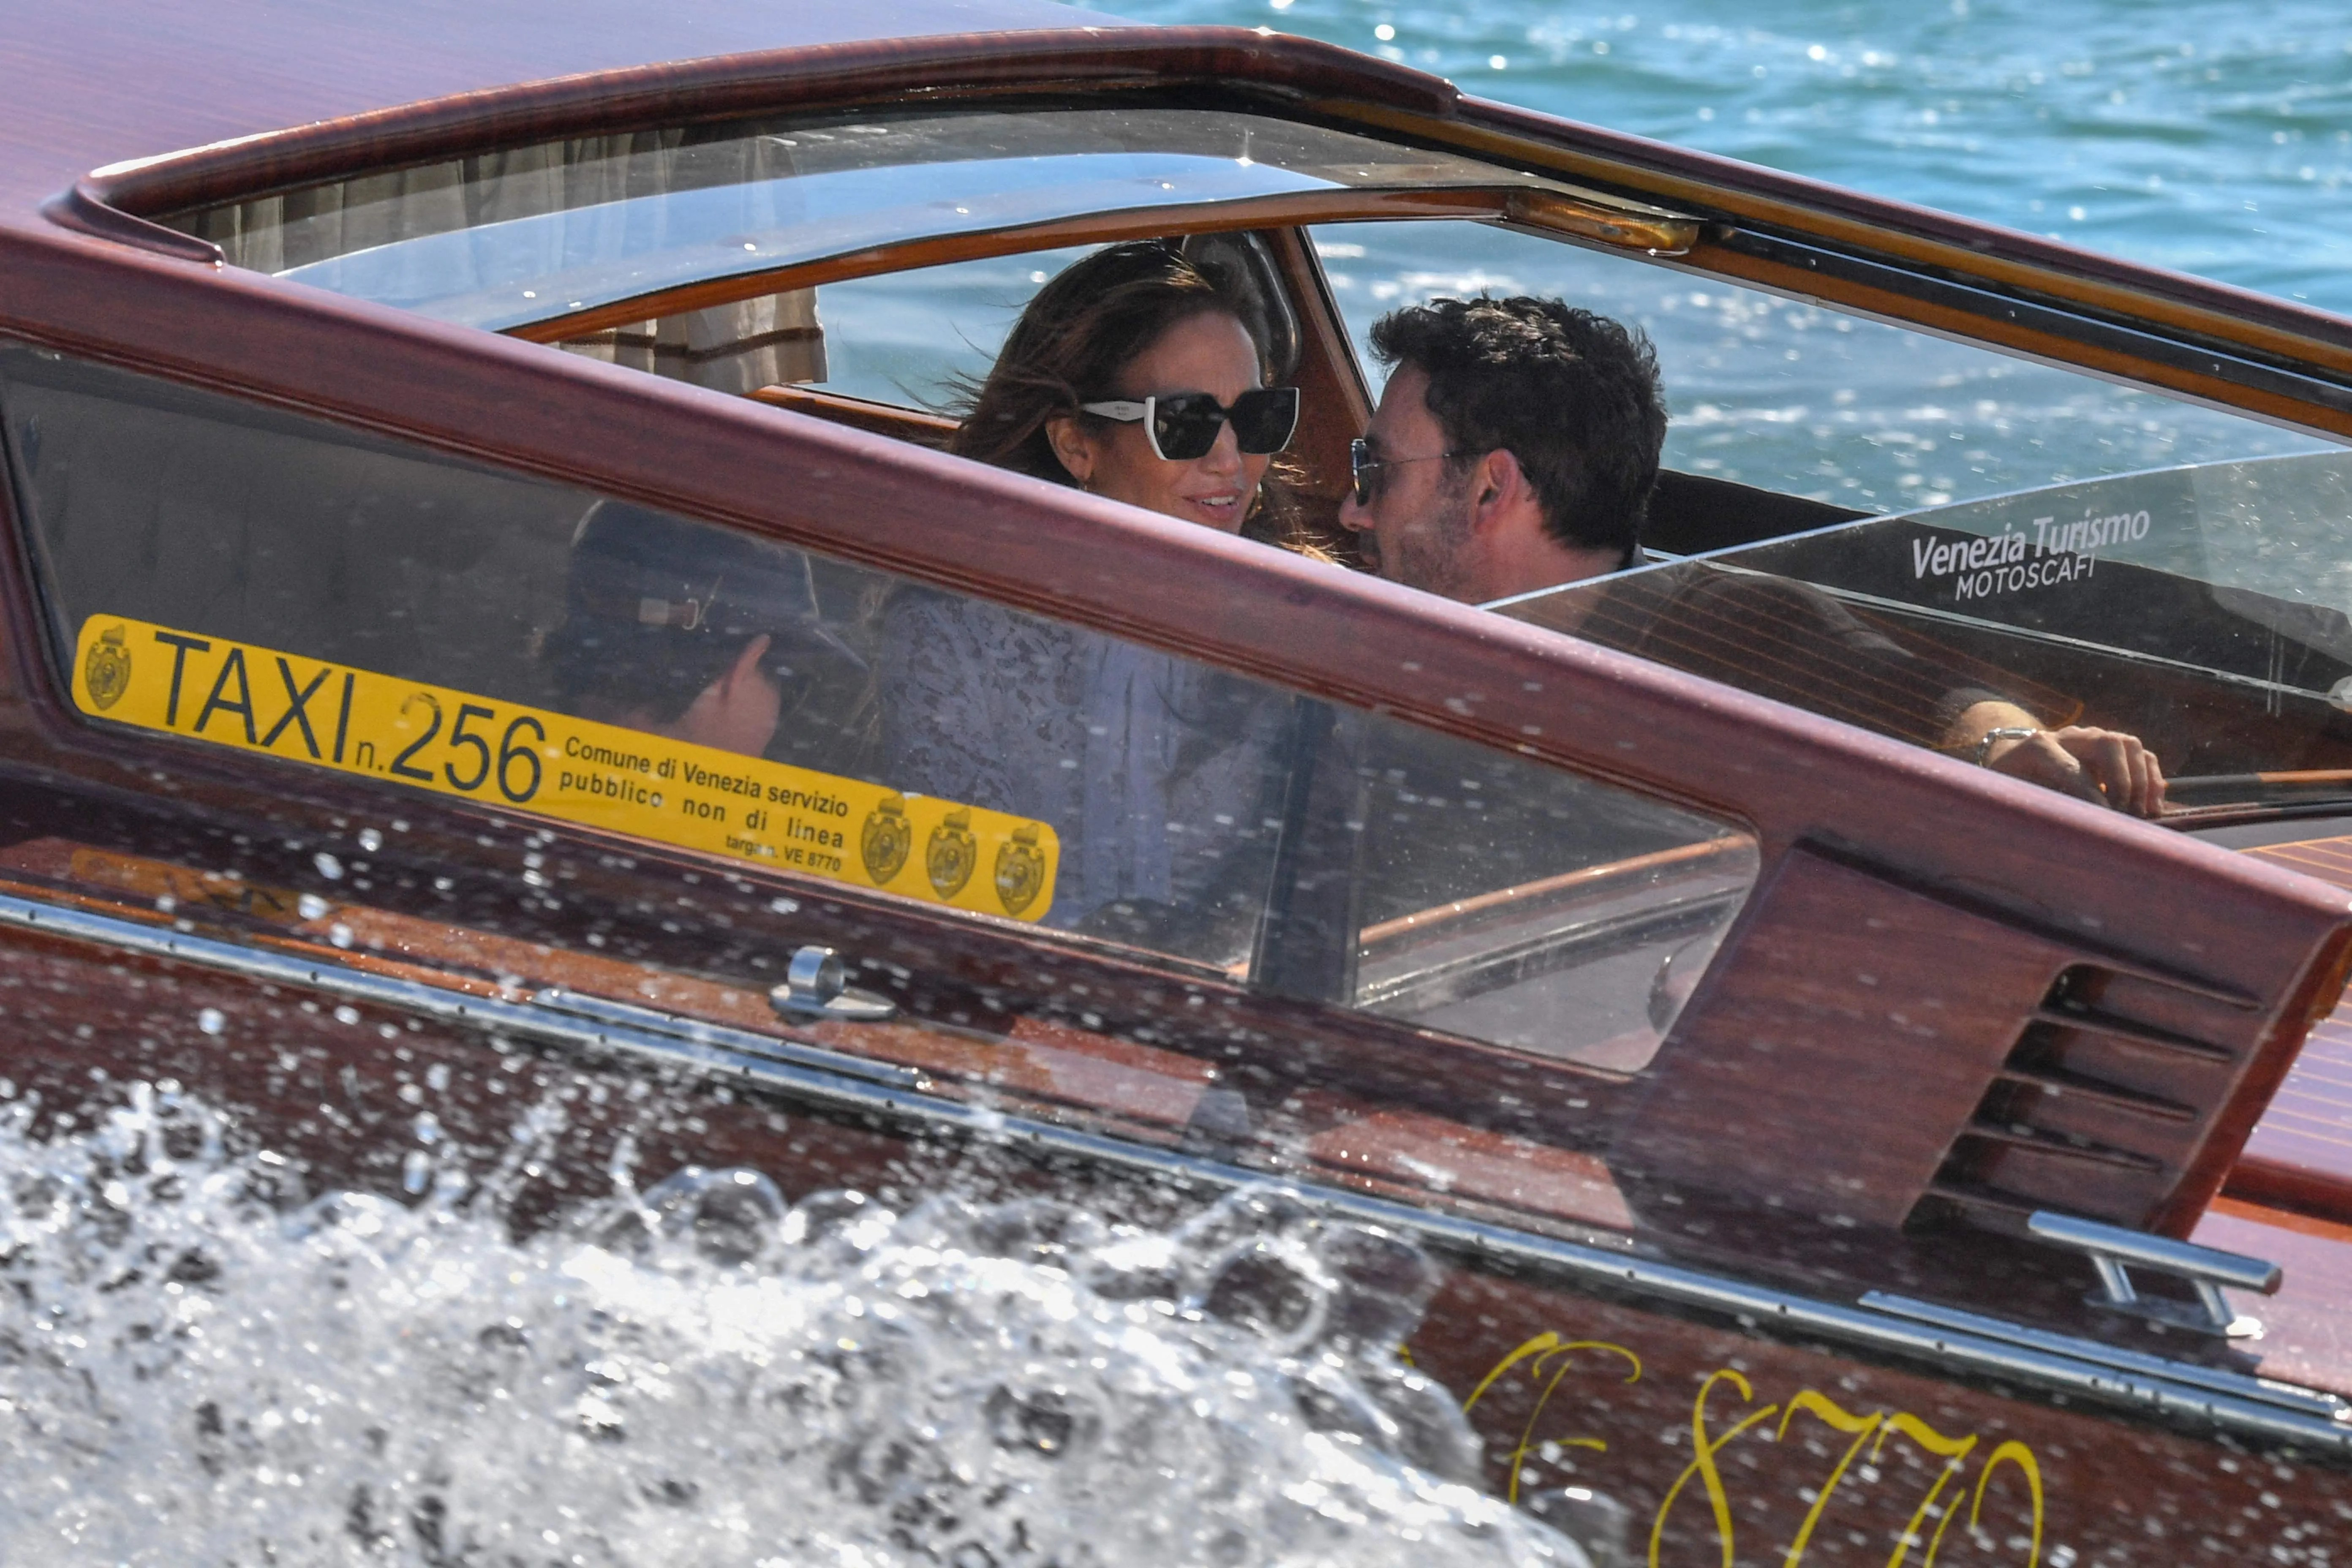 Ben Affleck and Jennifer Lopez travel across the Venice basin towards the Cipriani Hotel aboard a vaporetto taxi boat on Sept. 9, 2021 after they arrived to attend the 78th Venice Film Festival in Venice.